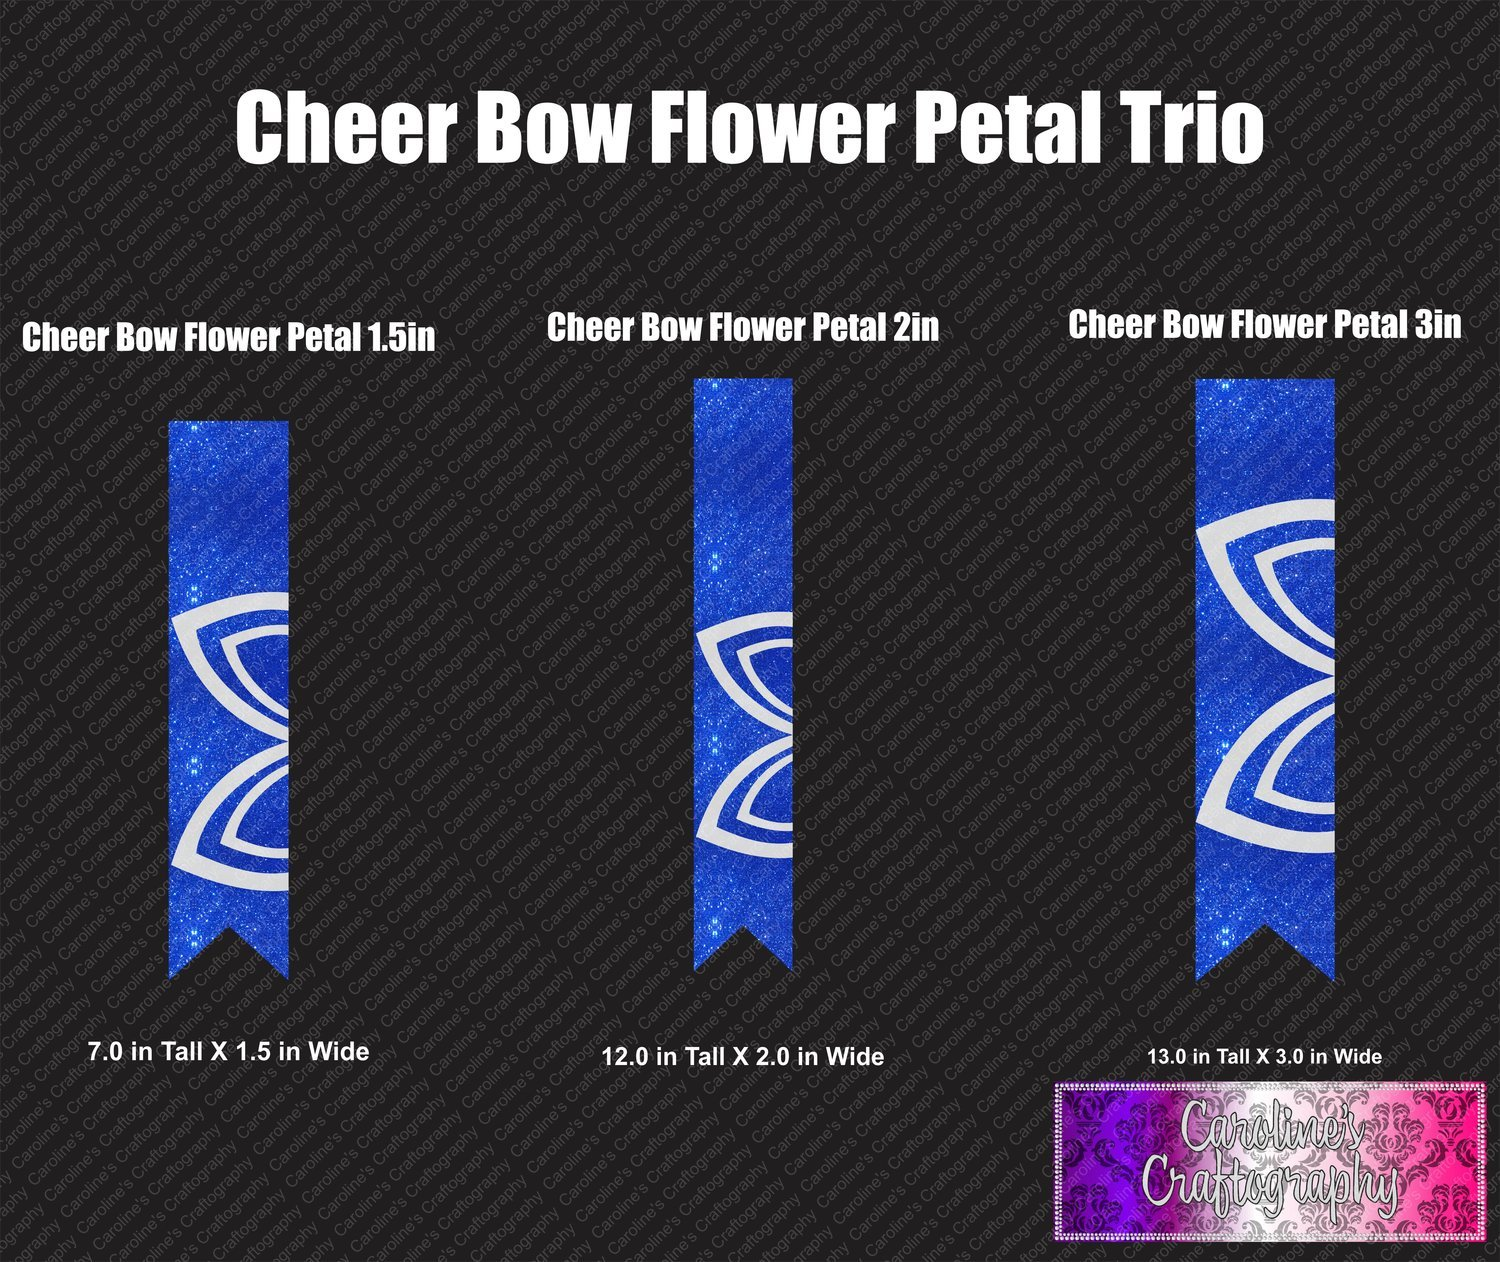 Flower Petal Cheer Bow Trio